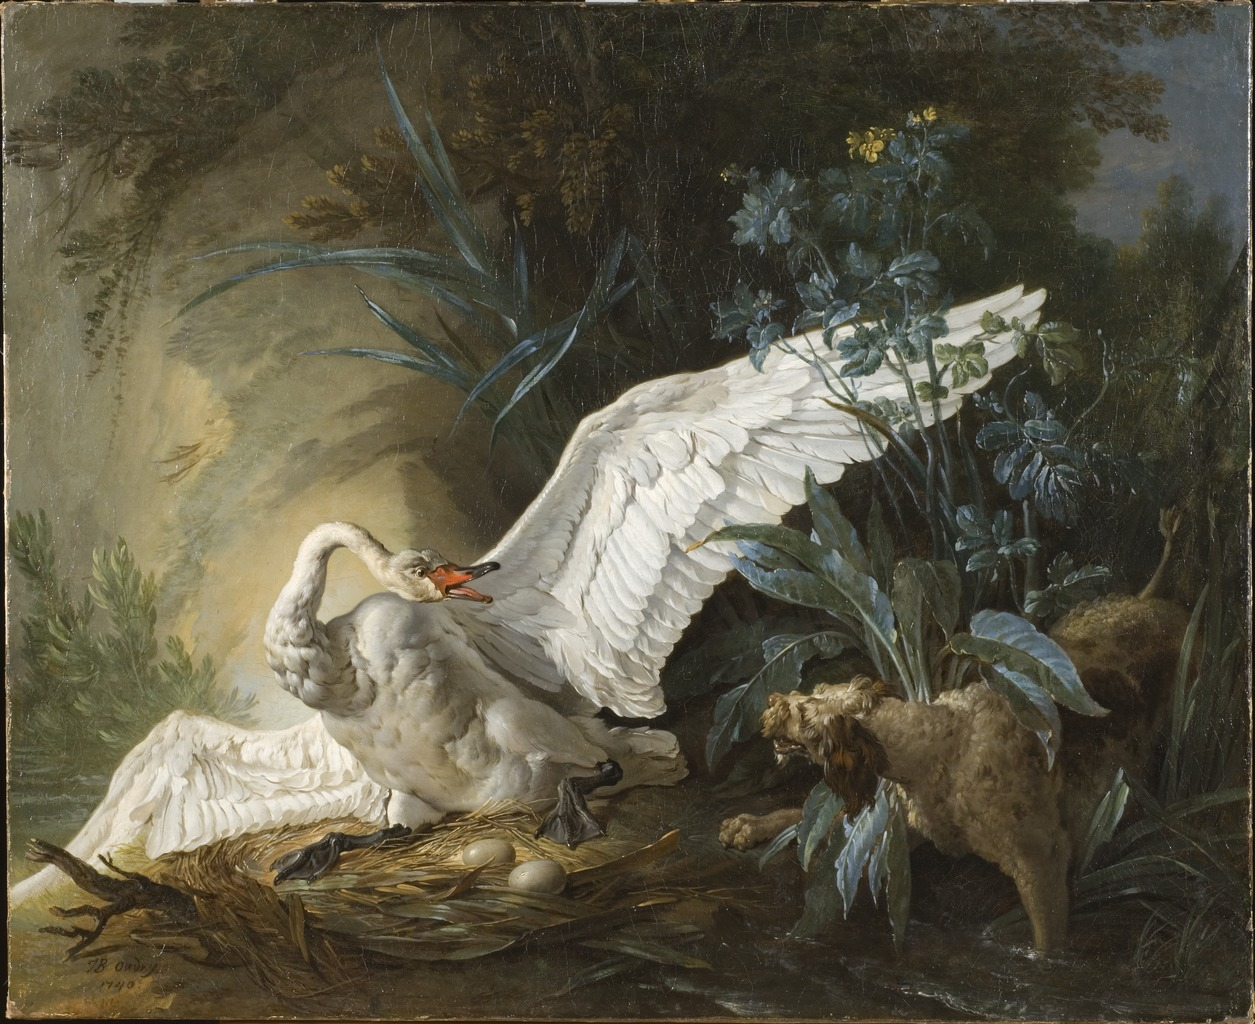 https://upload.wikimedia.org/wikipedia/commons/thumb/1/1d/Water_Spaniel_Surprising_a_Swan_on_its_Nest_%28Jean-Baptiste_Oudry%29_-_Nationalmuseum_-_117886.tif/lossy-page1-1255px-Water_Spaniel_Surprising_a_Swan_on_its_Nest_%28Jean-Baptiste_Oudry%29_-_Nationalmuseum_-_117886.tif.jpg